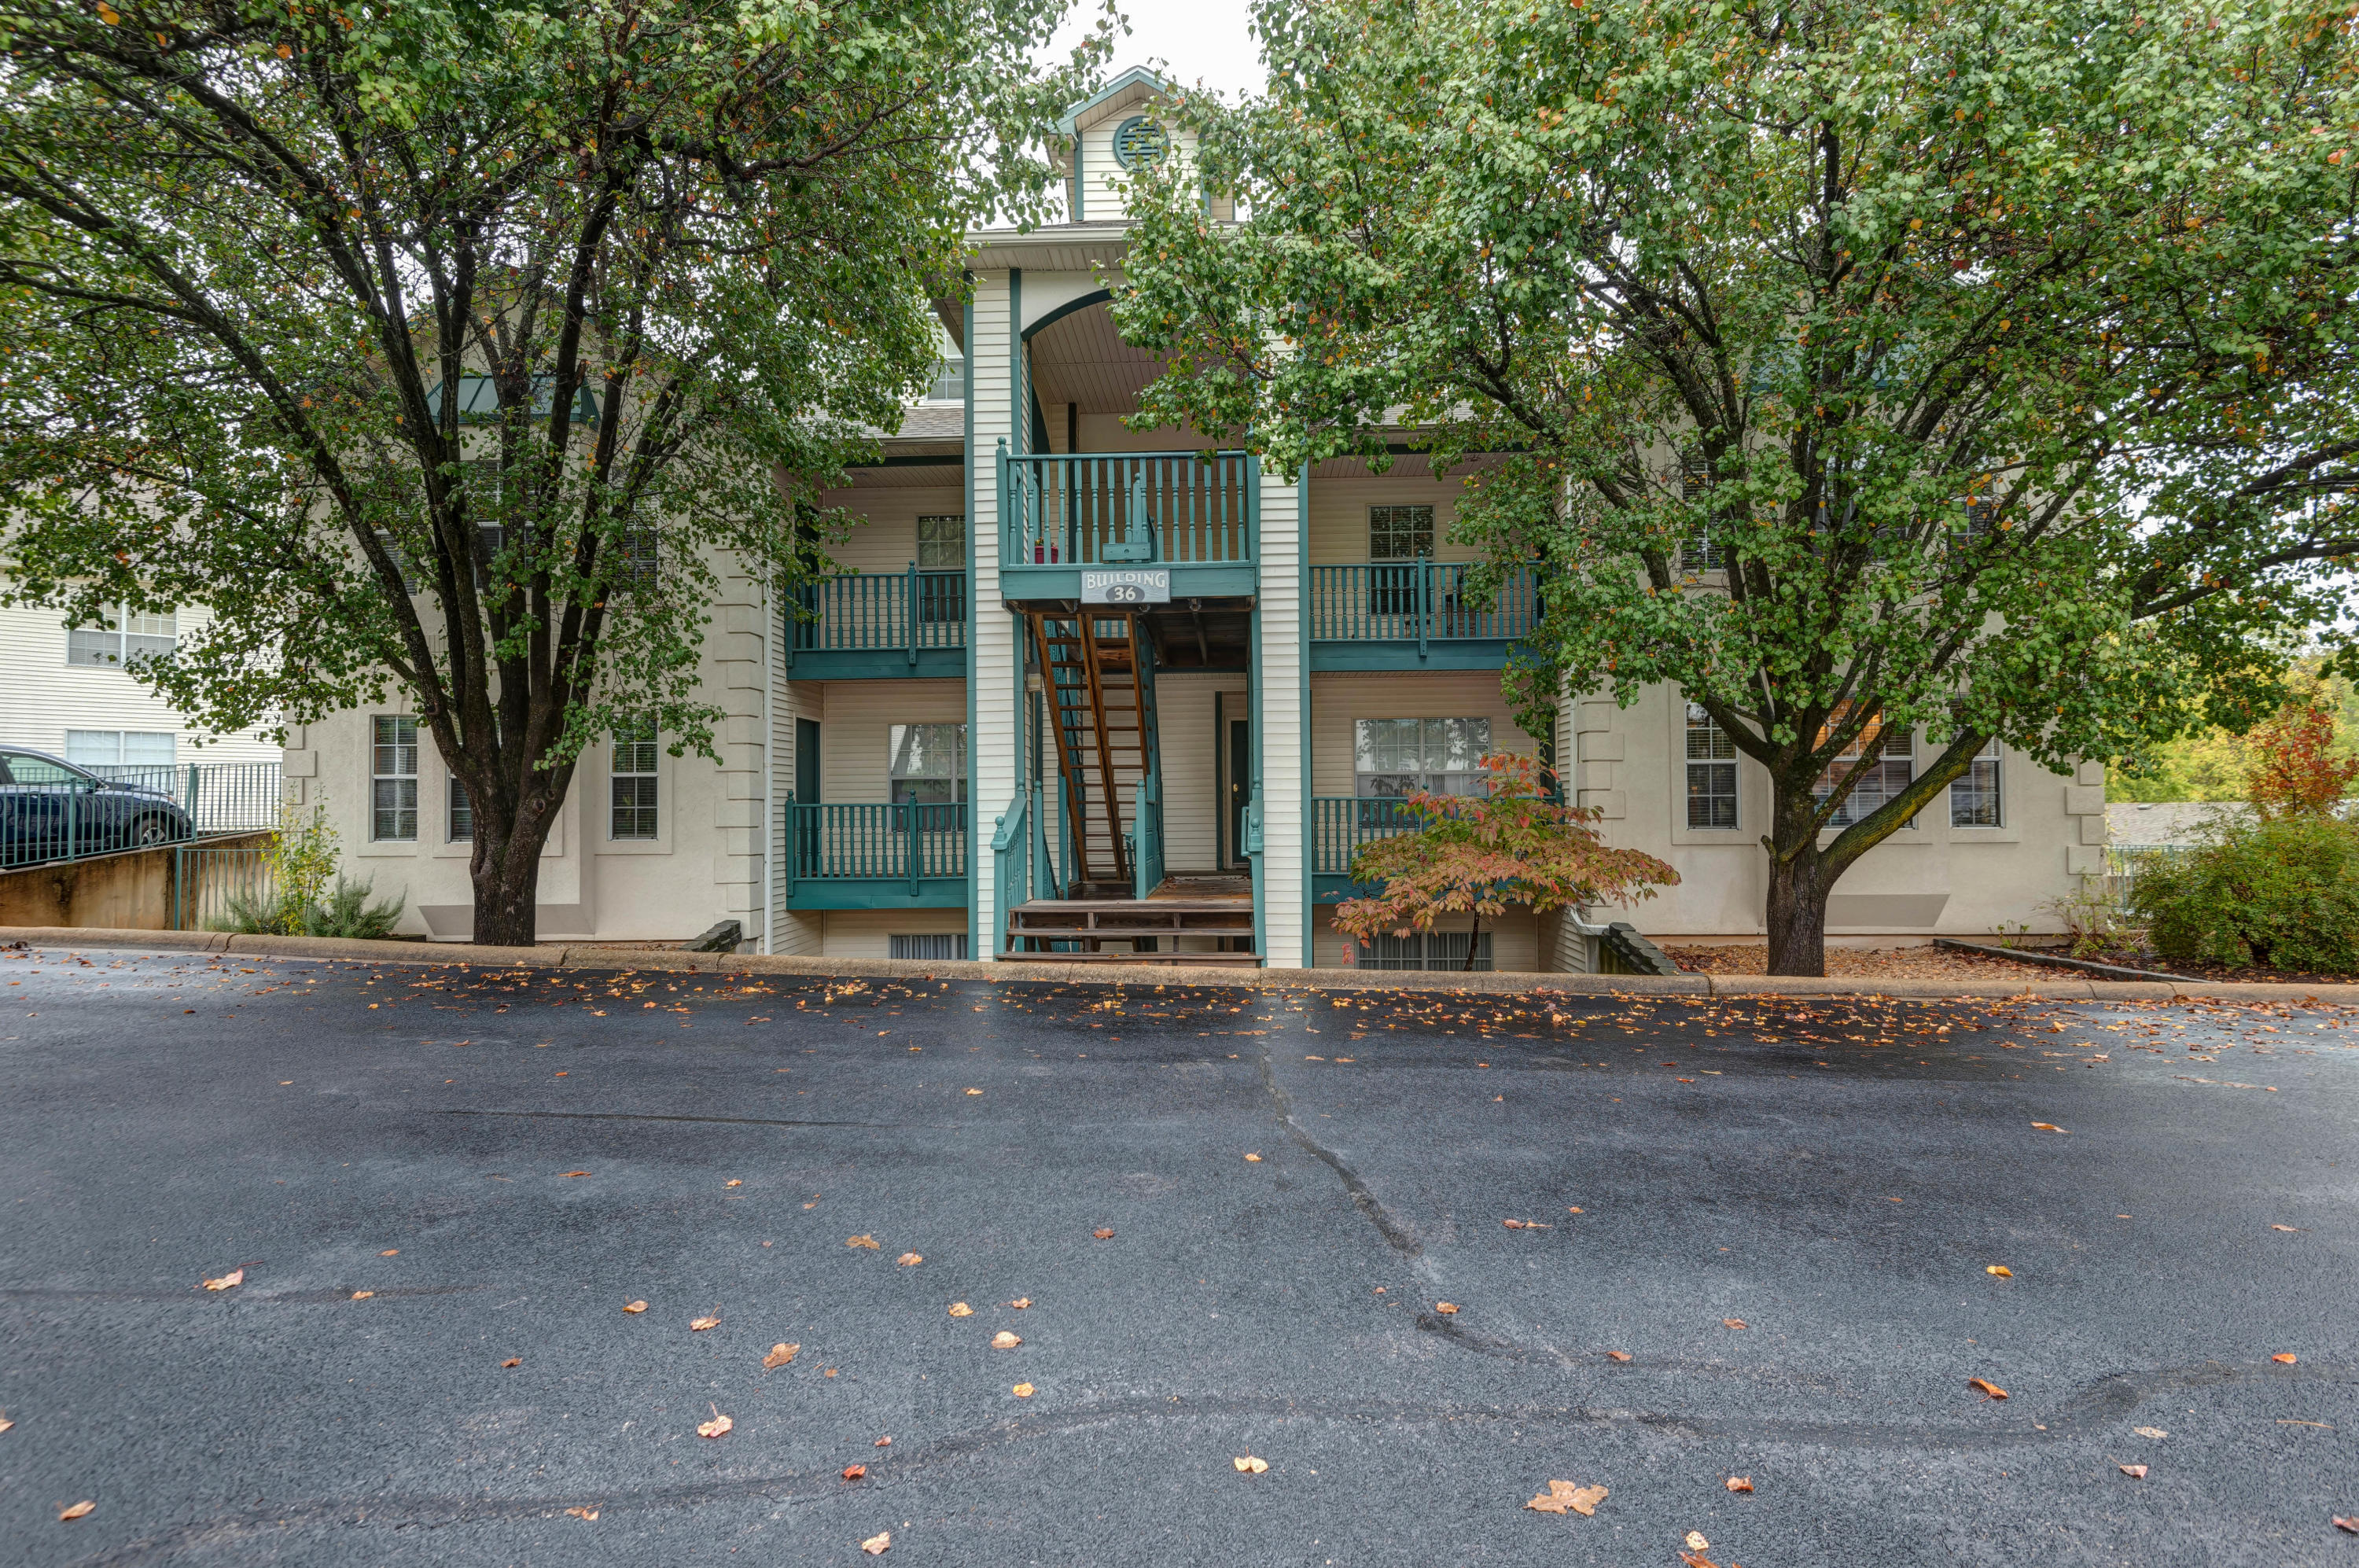 149 The Bluffs UNIT 6 Branson, MO 65616